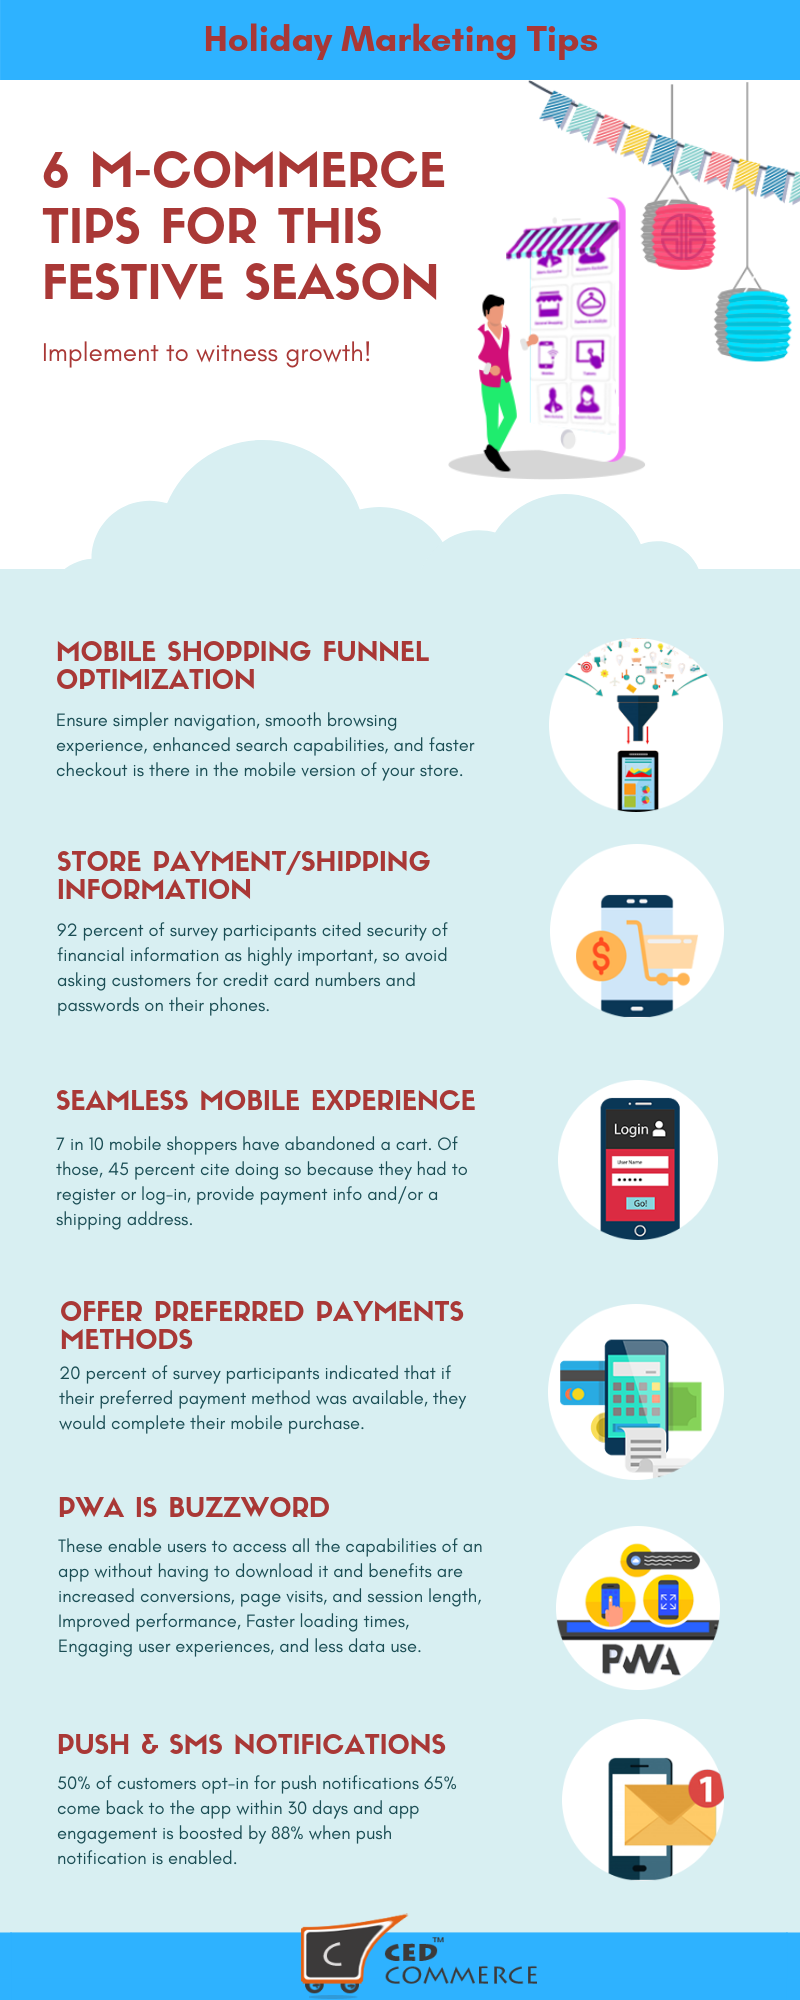 Tips to optimize mobile buying journey